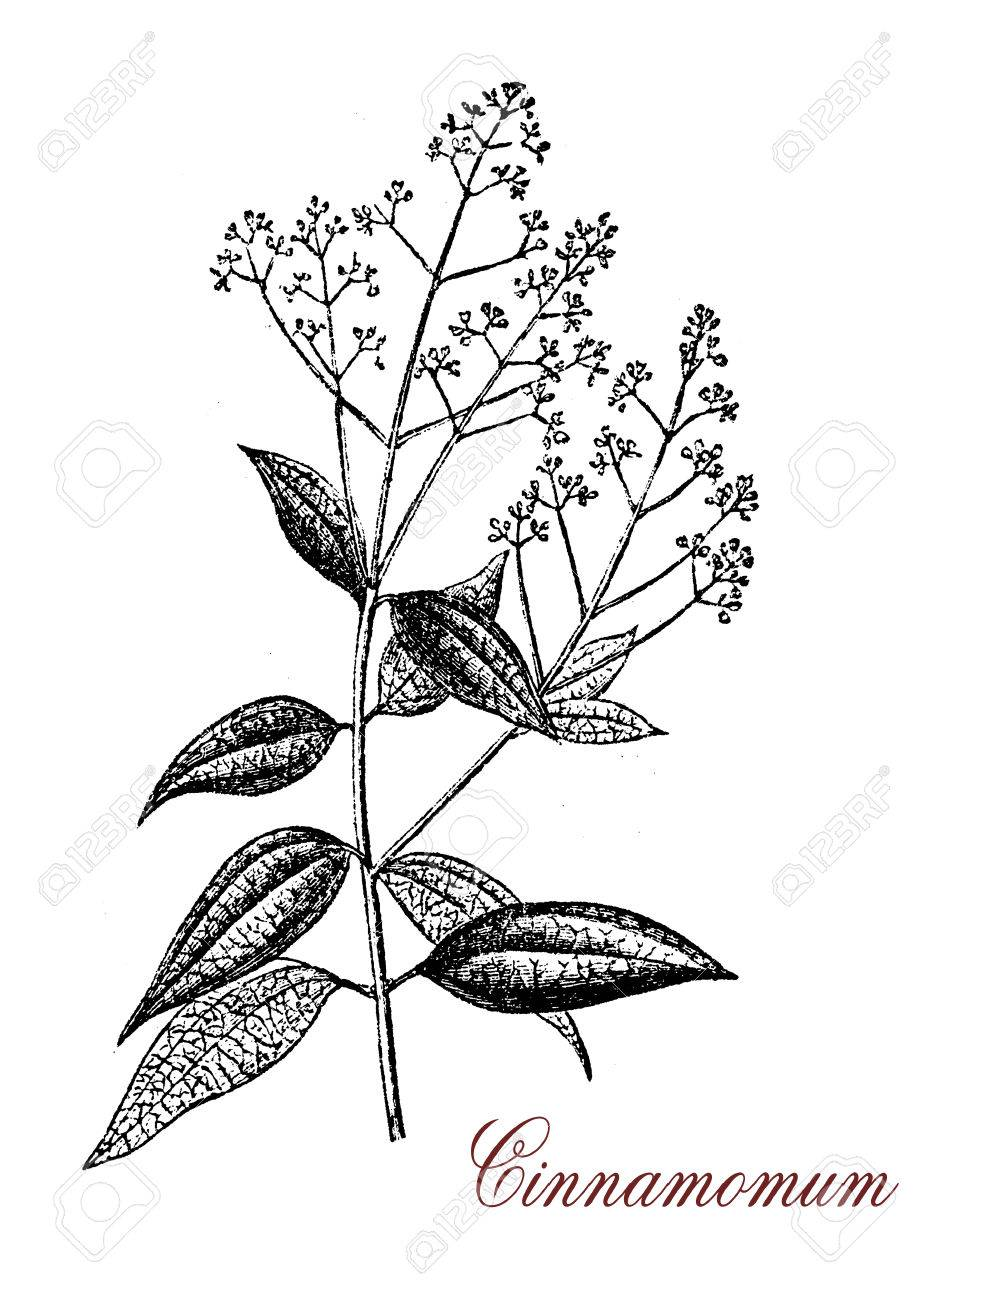 1001x1300 Vintage Engraving Of Cinnamomum, An Evergreen Aromatic Tree